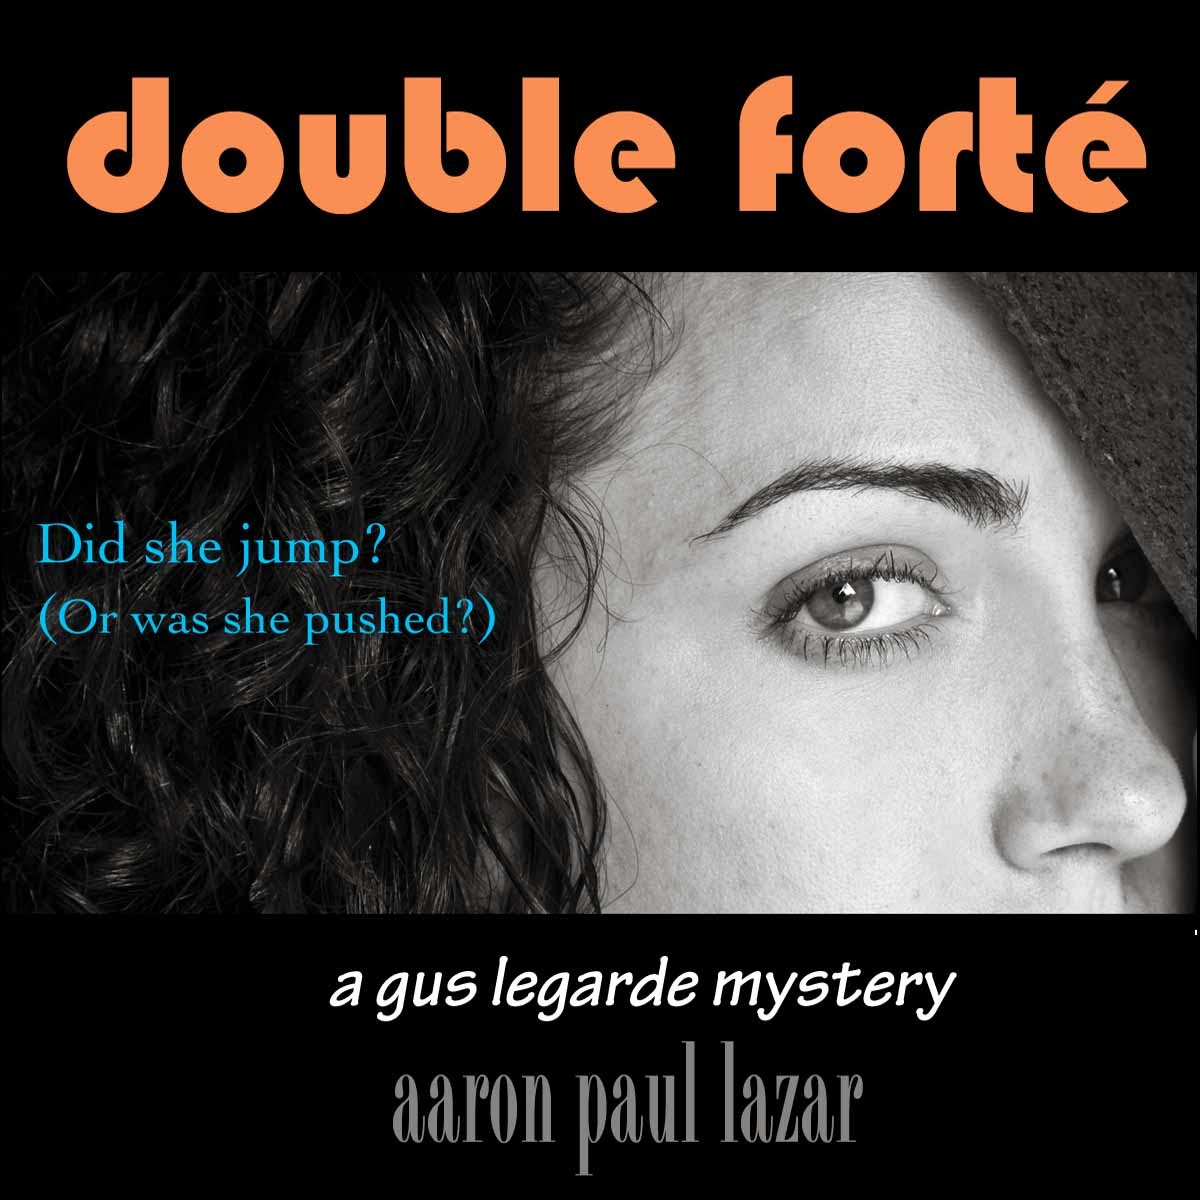 http://www.audible.com/pd/Mysteries-Thrillers/Double-Forte-Audiobook/B008XO7GLG/ref=a_search_c4_1_1_srTtl?qid=1390132438&sr=1-1